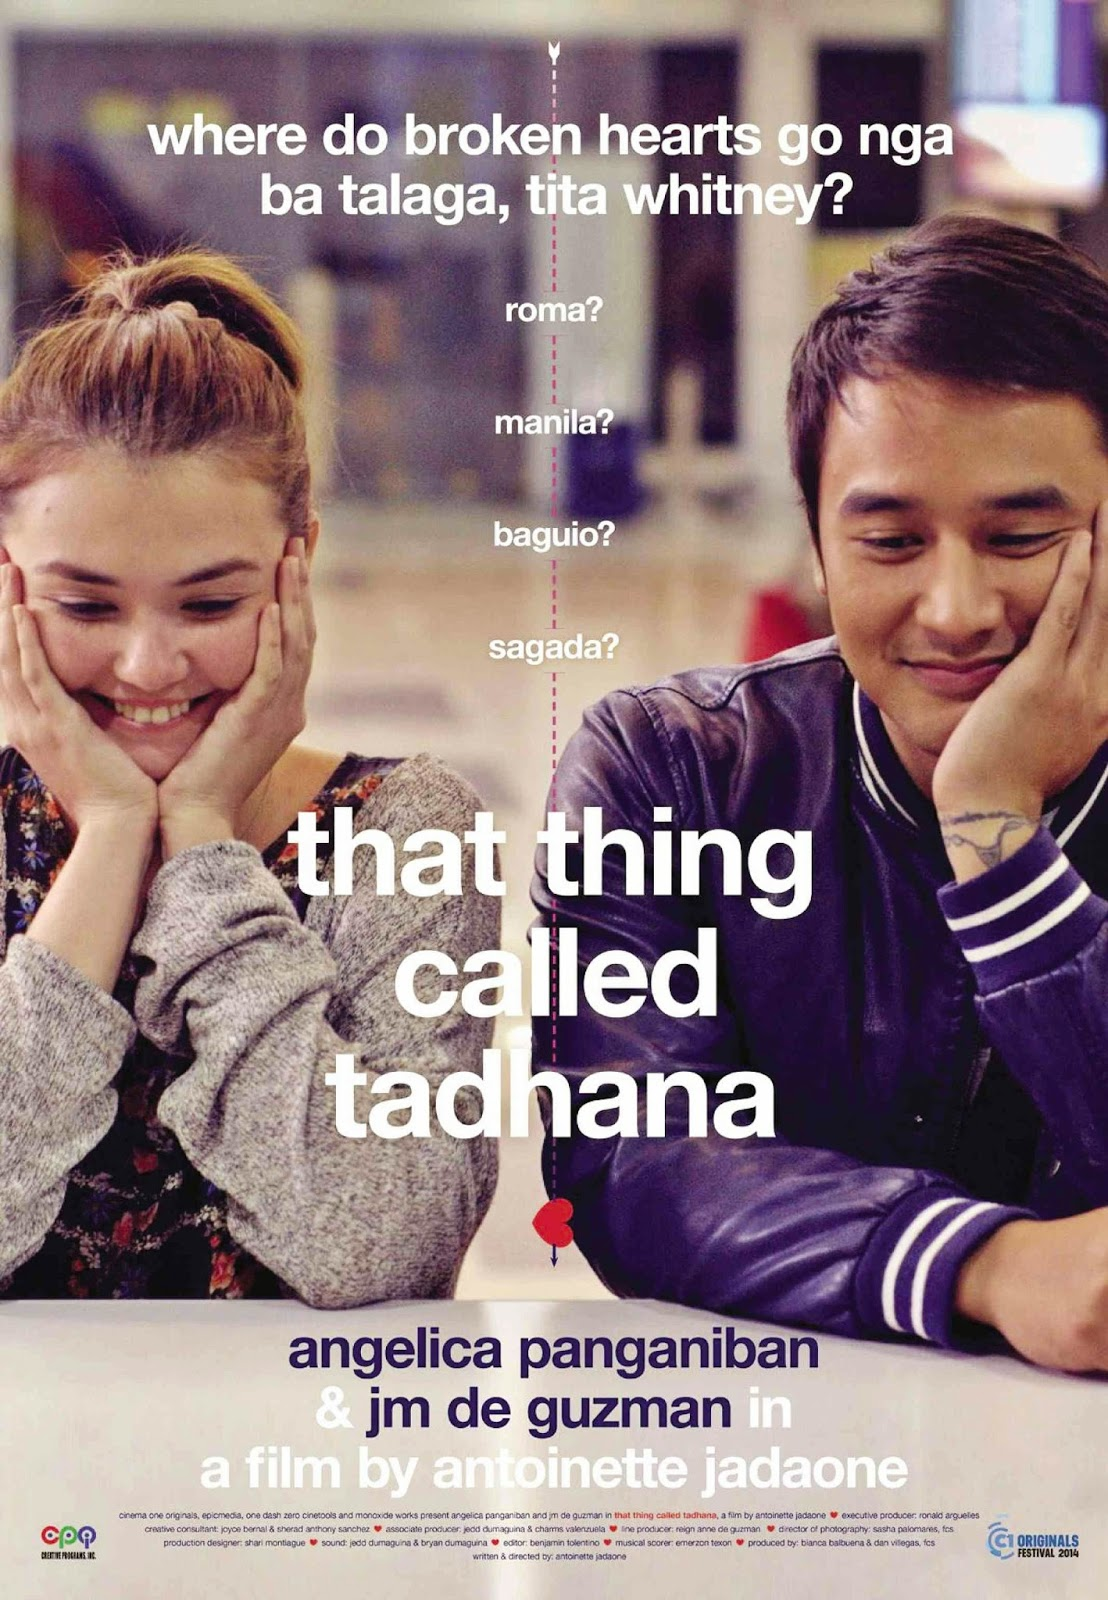 That Thing Called Tadhana Filipino Romance Drama Film